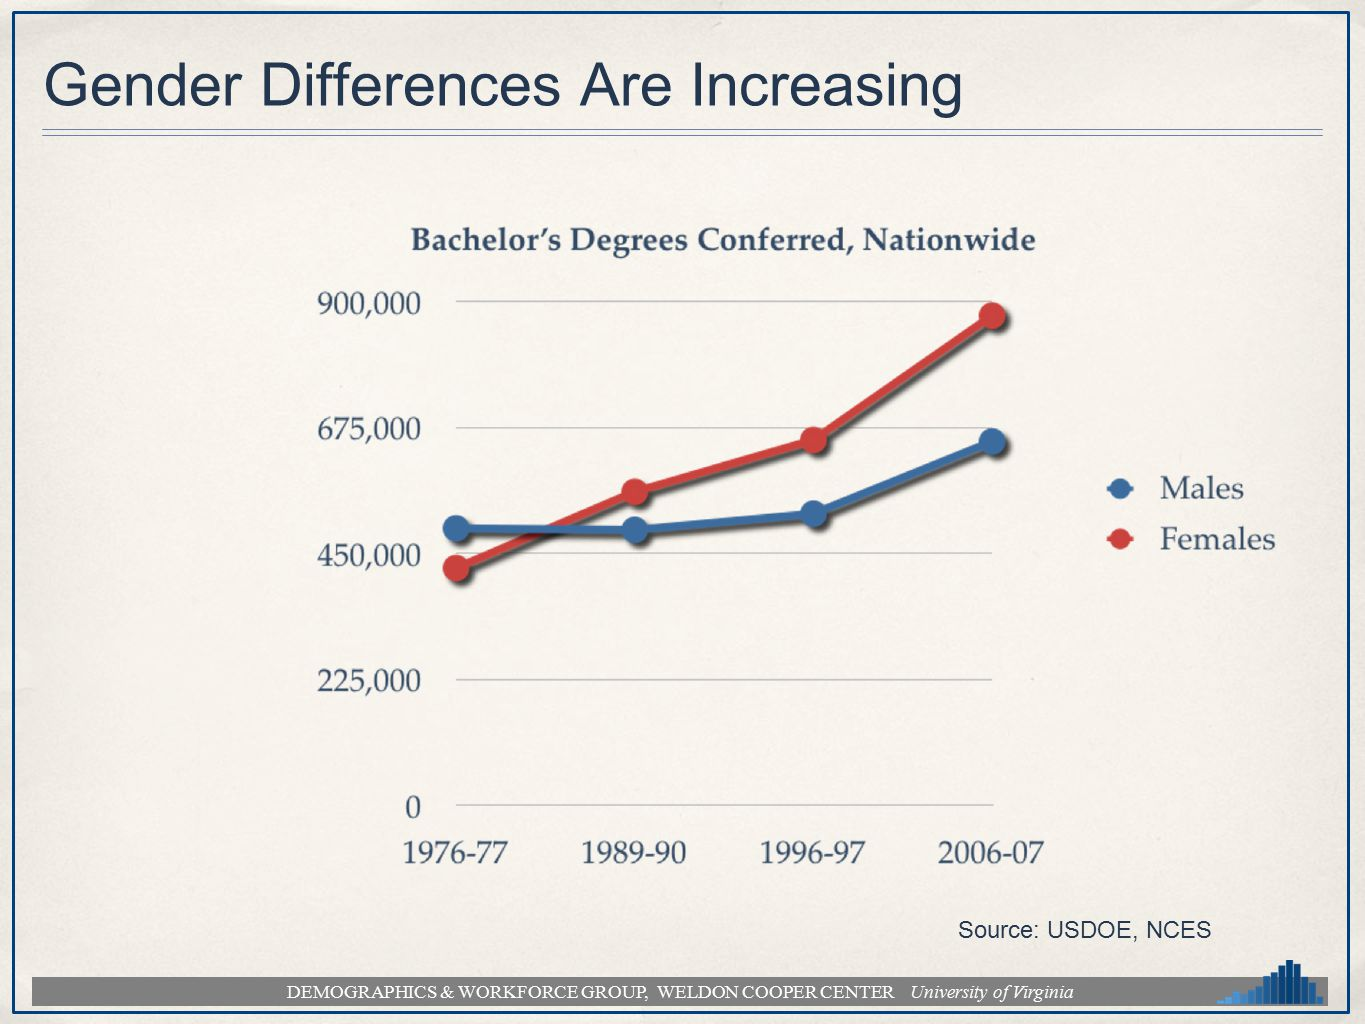 DEMOGRAPHICS & WORKFORCE GROUP, WELDON COOPER CENTER University of Virginia Gender Differences Are Increasing Source: USDOE, NCES